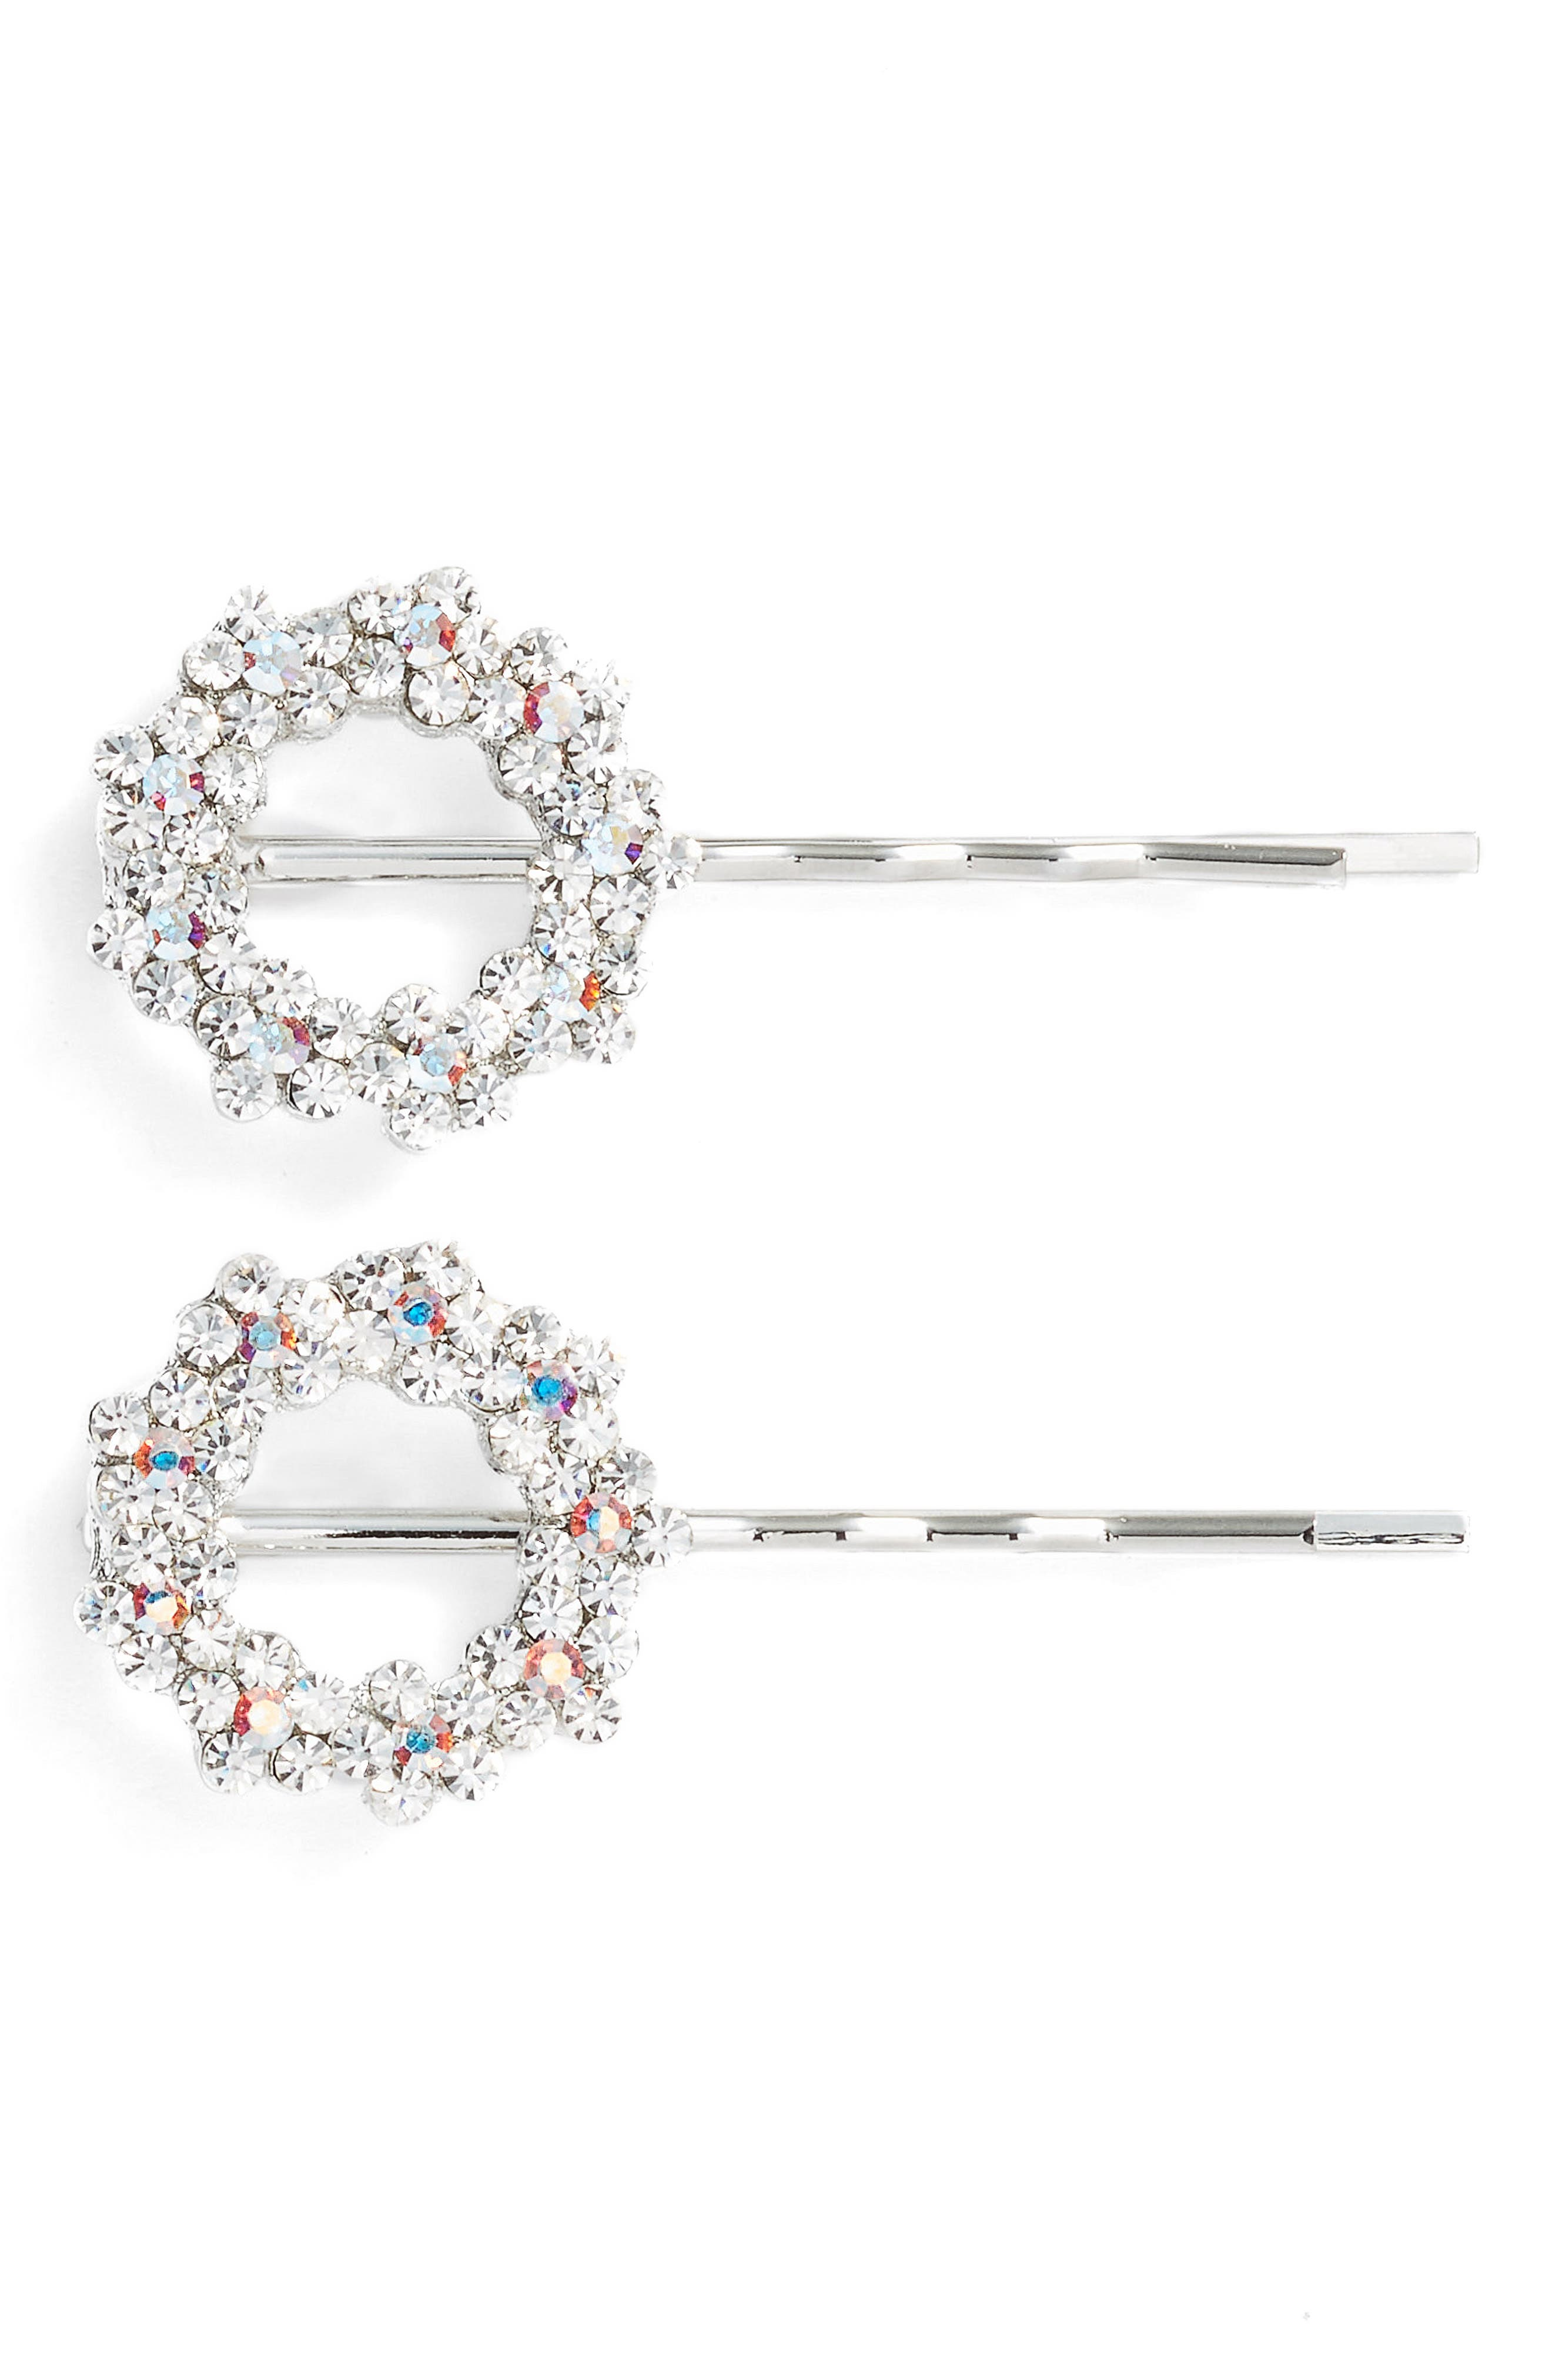 Set of 2 Crystal Flower Wreath Bobby Pins,                             Main thumbnail 1, color,                             Silver